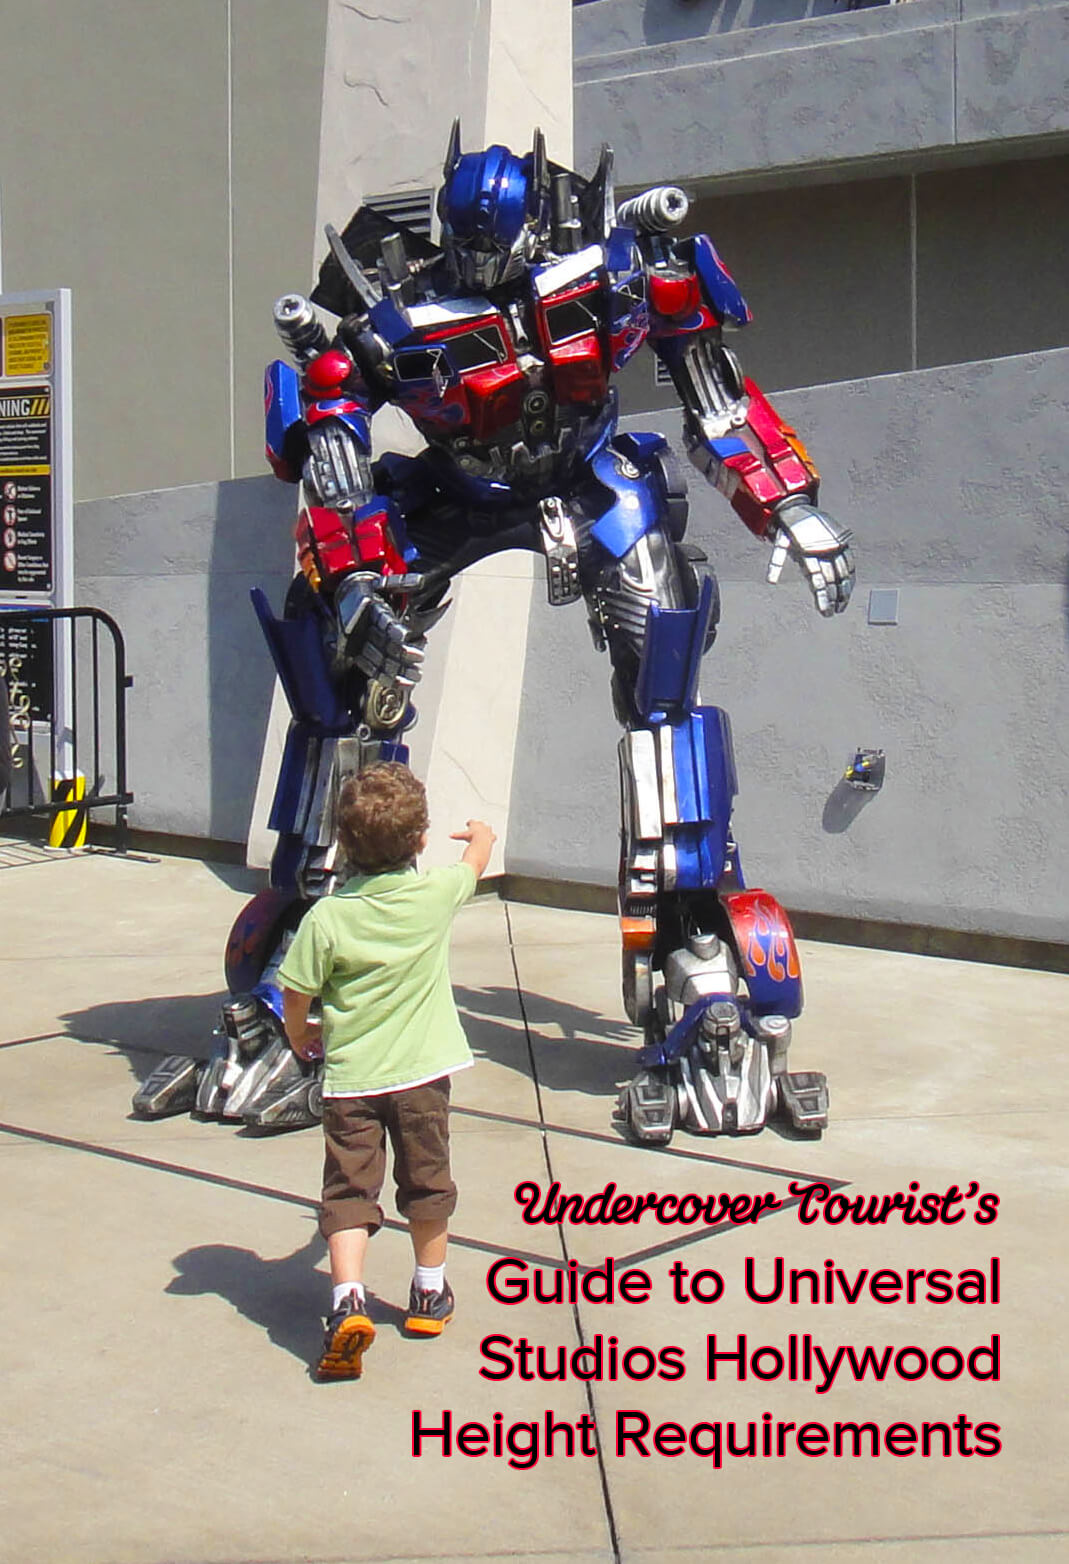 Guide to Universal Studios Hollywood Height Requirements